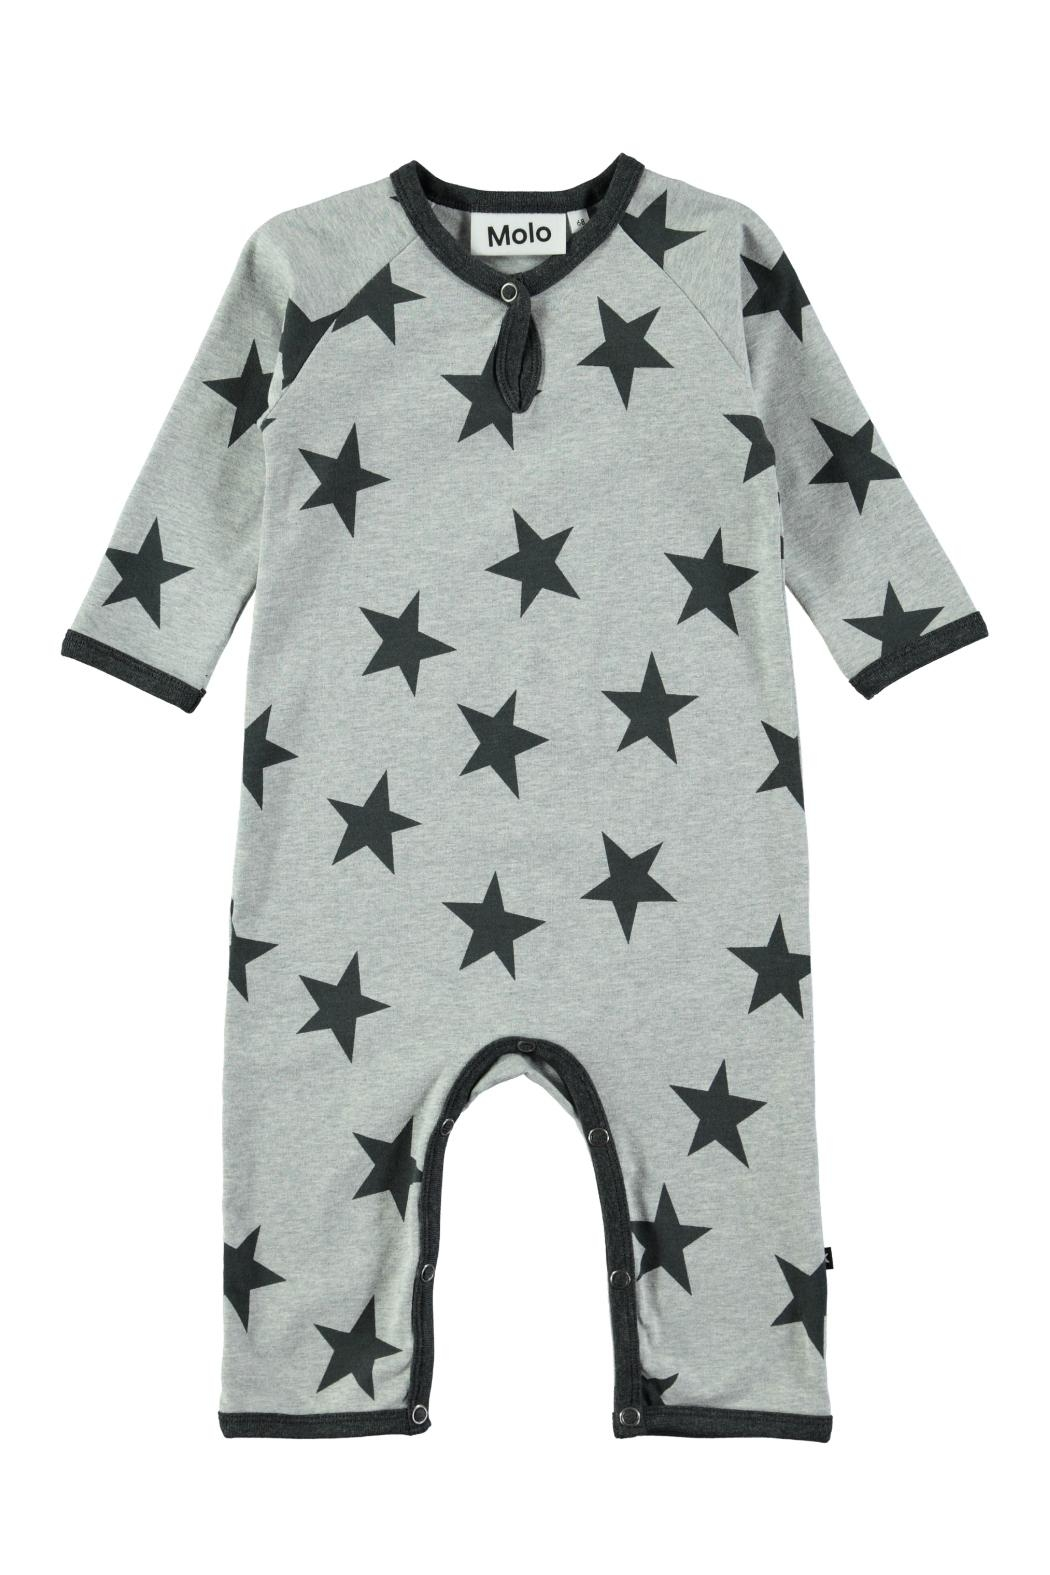 Molo Dark Star Playsuit - Main Image